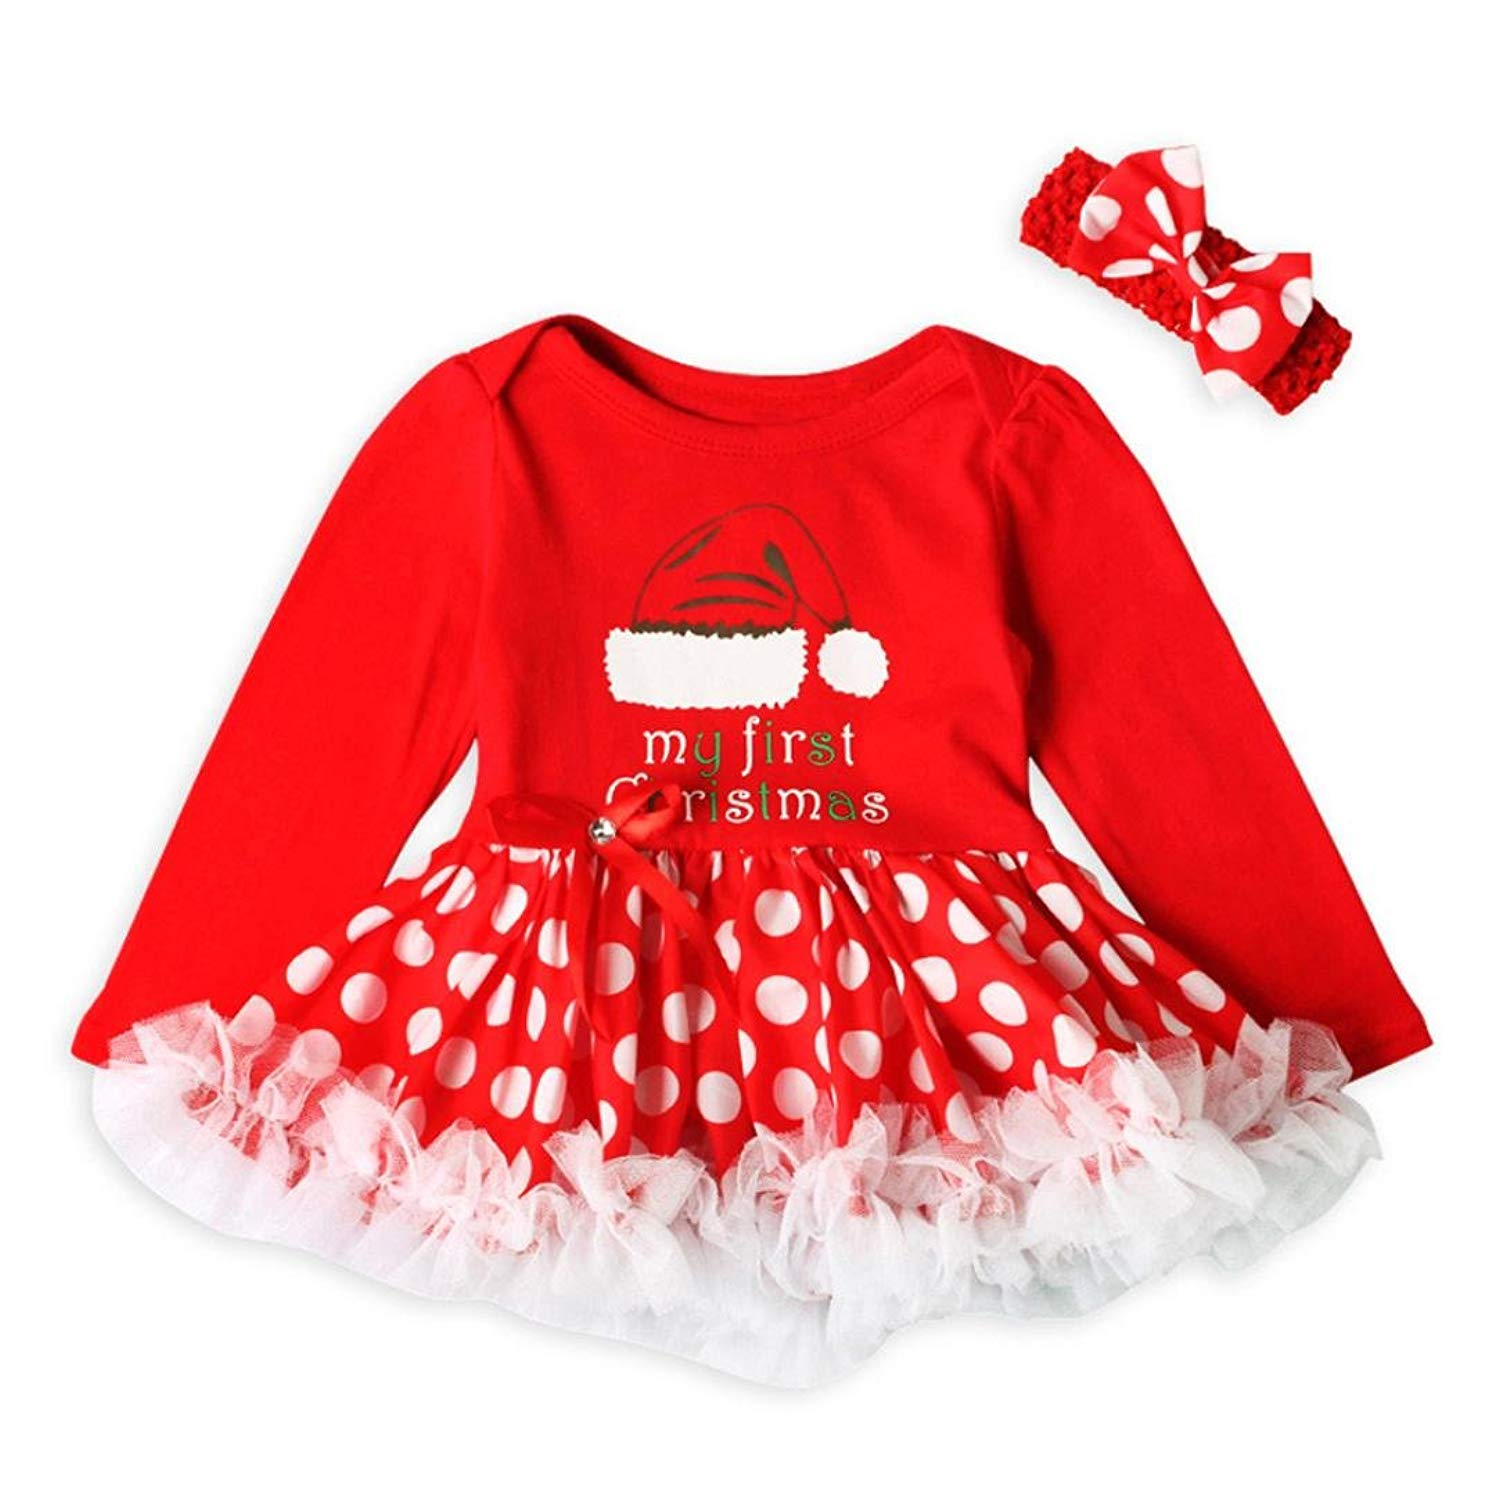 Christmas Tutu Outfits.Cheap Christmas Tutu Outfits Find Christmas Tutu Outfits